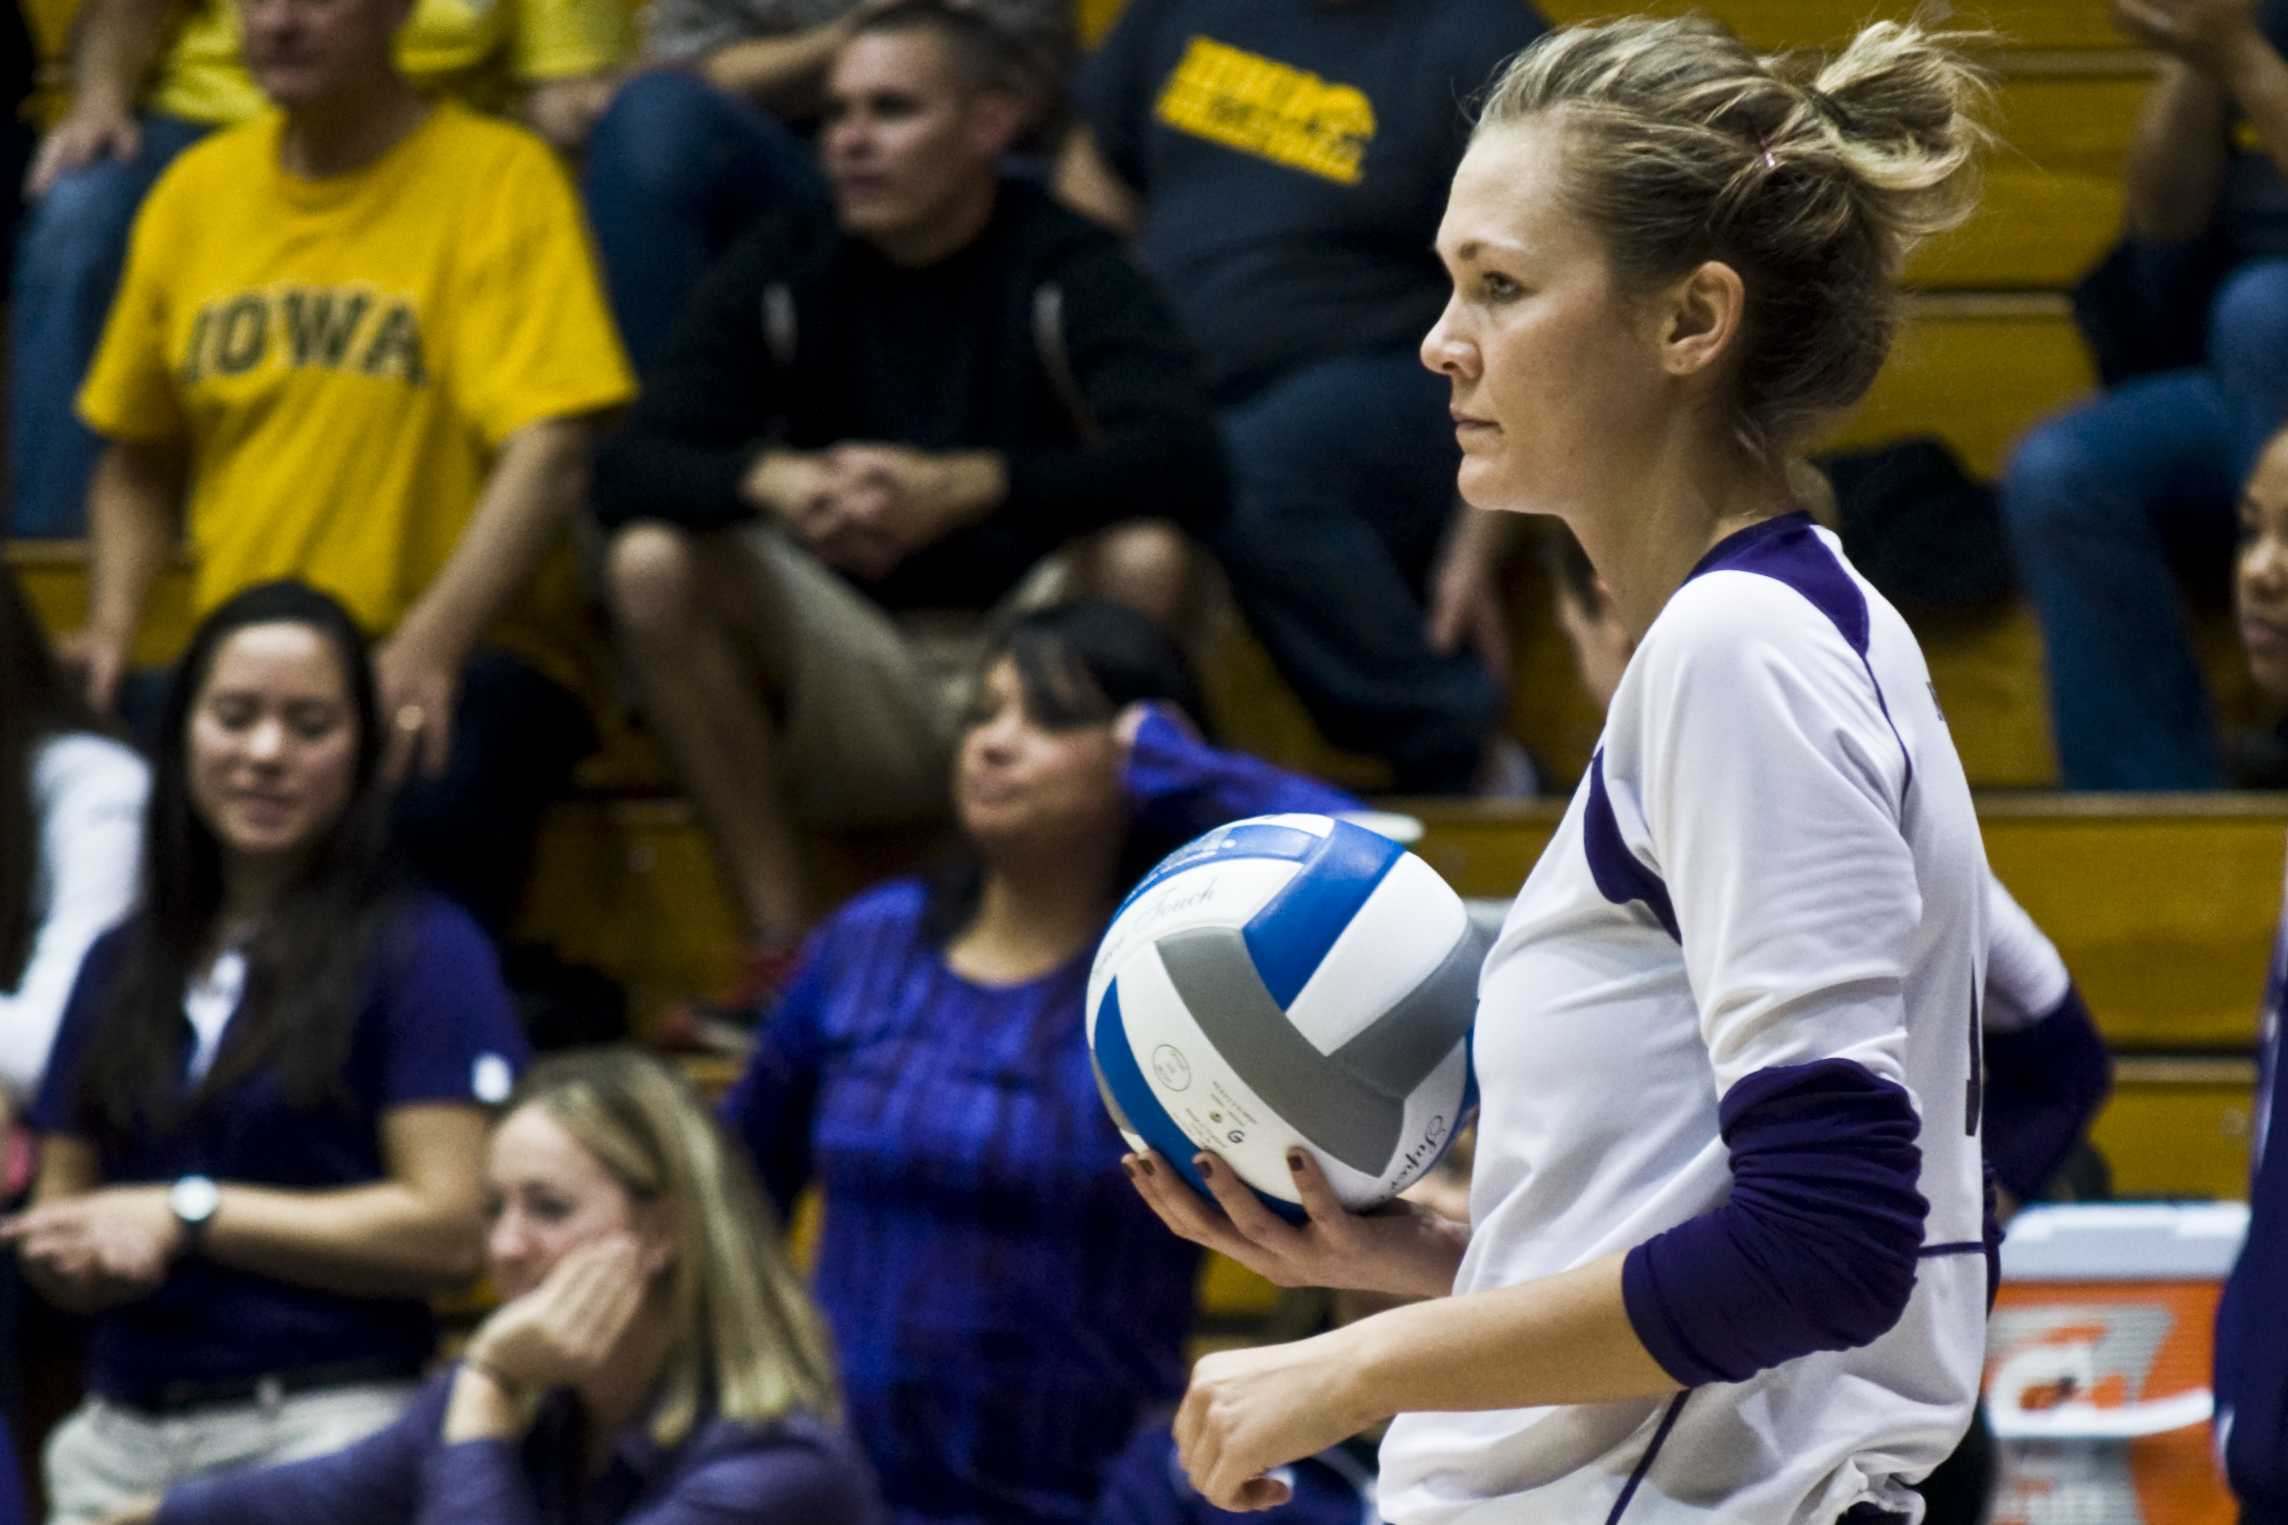 Setter Madalyn Shalter was a key cog in Northwestern's defeat of Michigan. The senior recorded 46 assists and 17 digs as the Wildcats won 3-1.